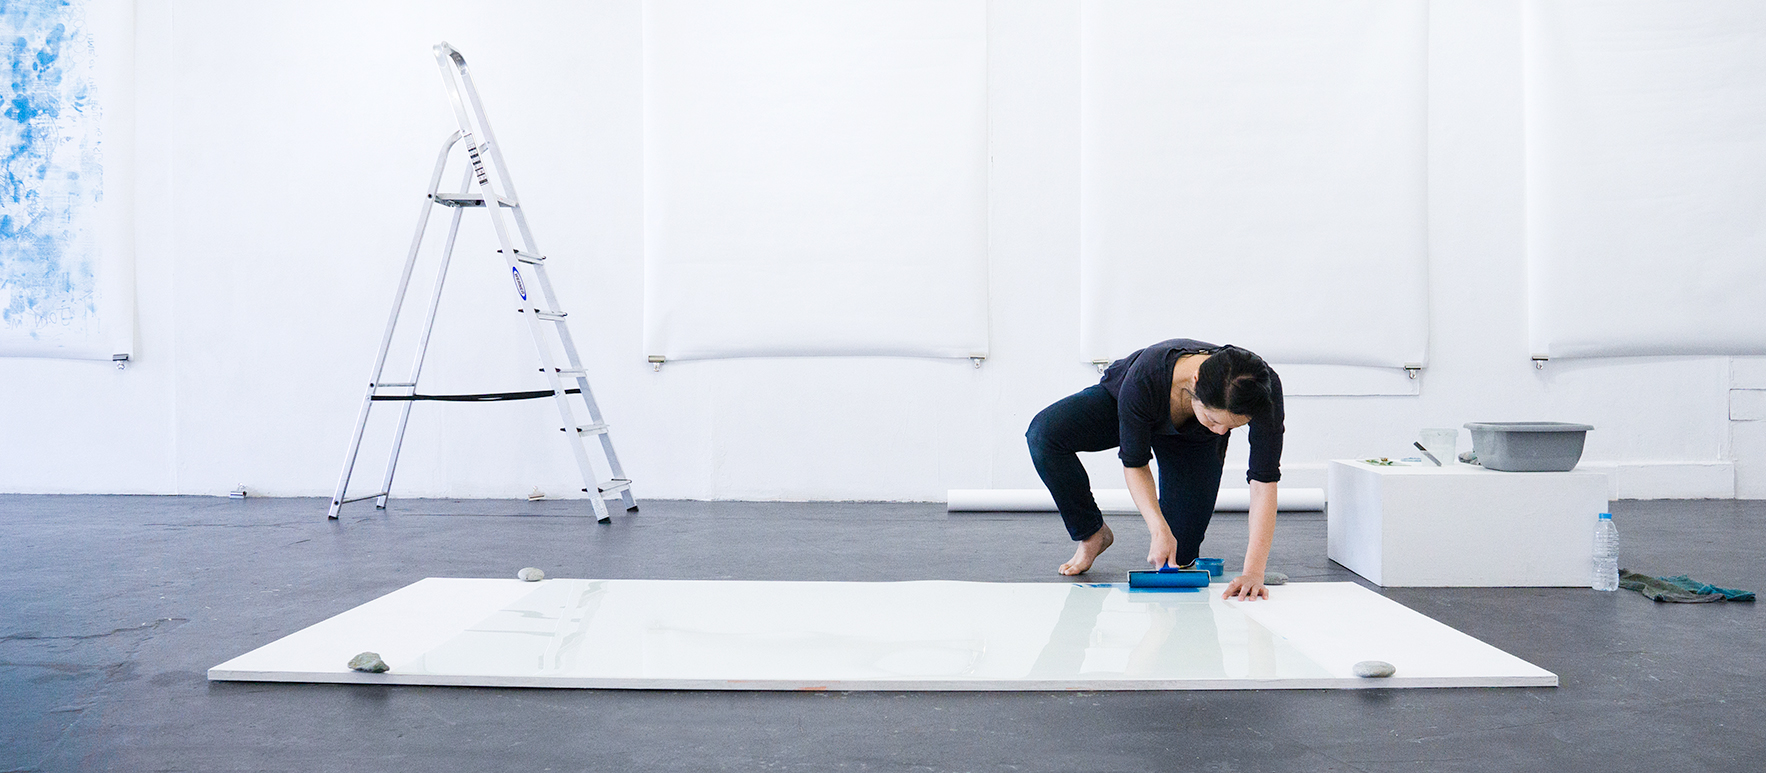 Artist Bettina Fung in action